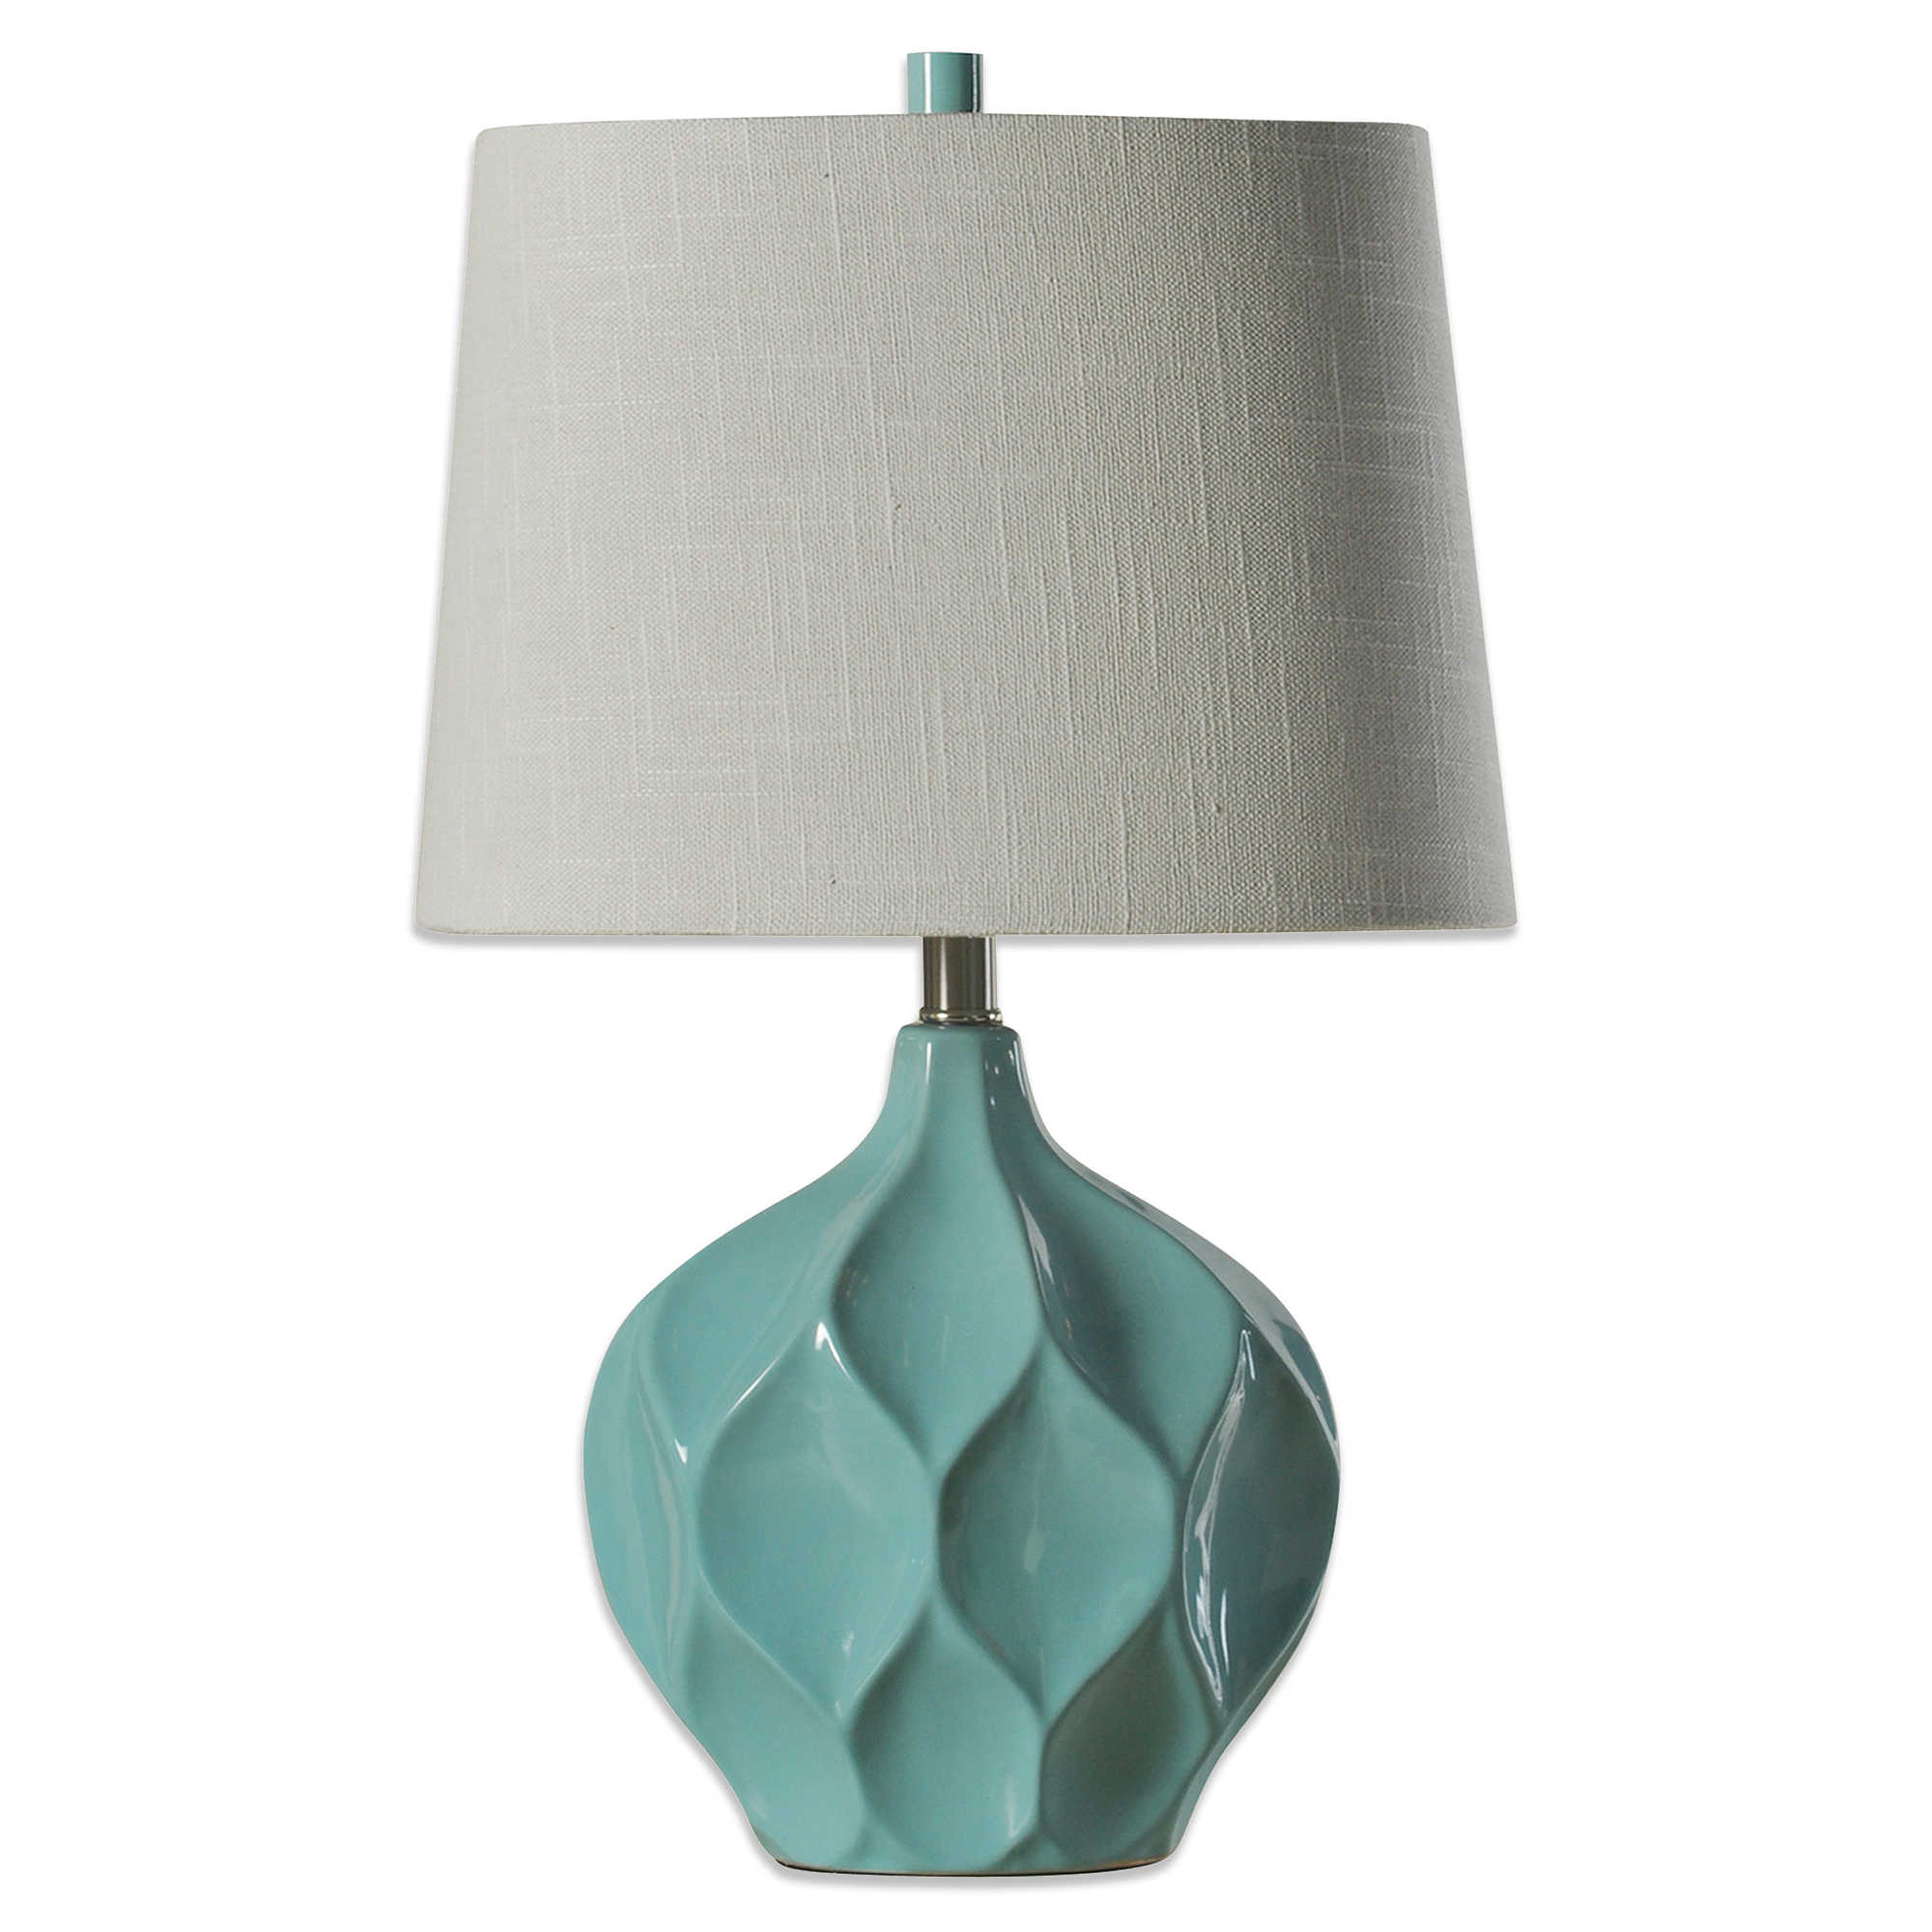 Coventry facets ceramic table lamp in woodlawn bed bath beyond coventry facets ceramic table lamp in woodlawn mozeypictures Choice Image